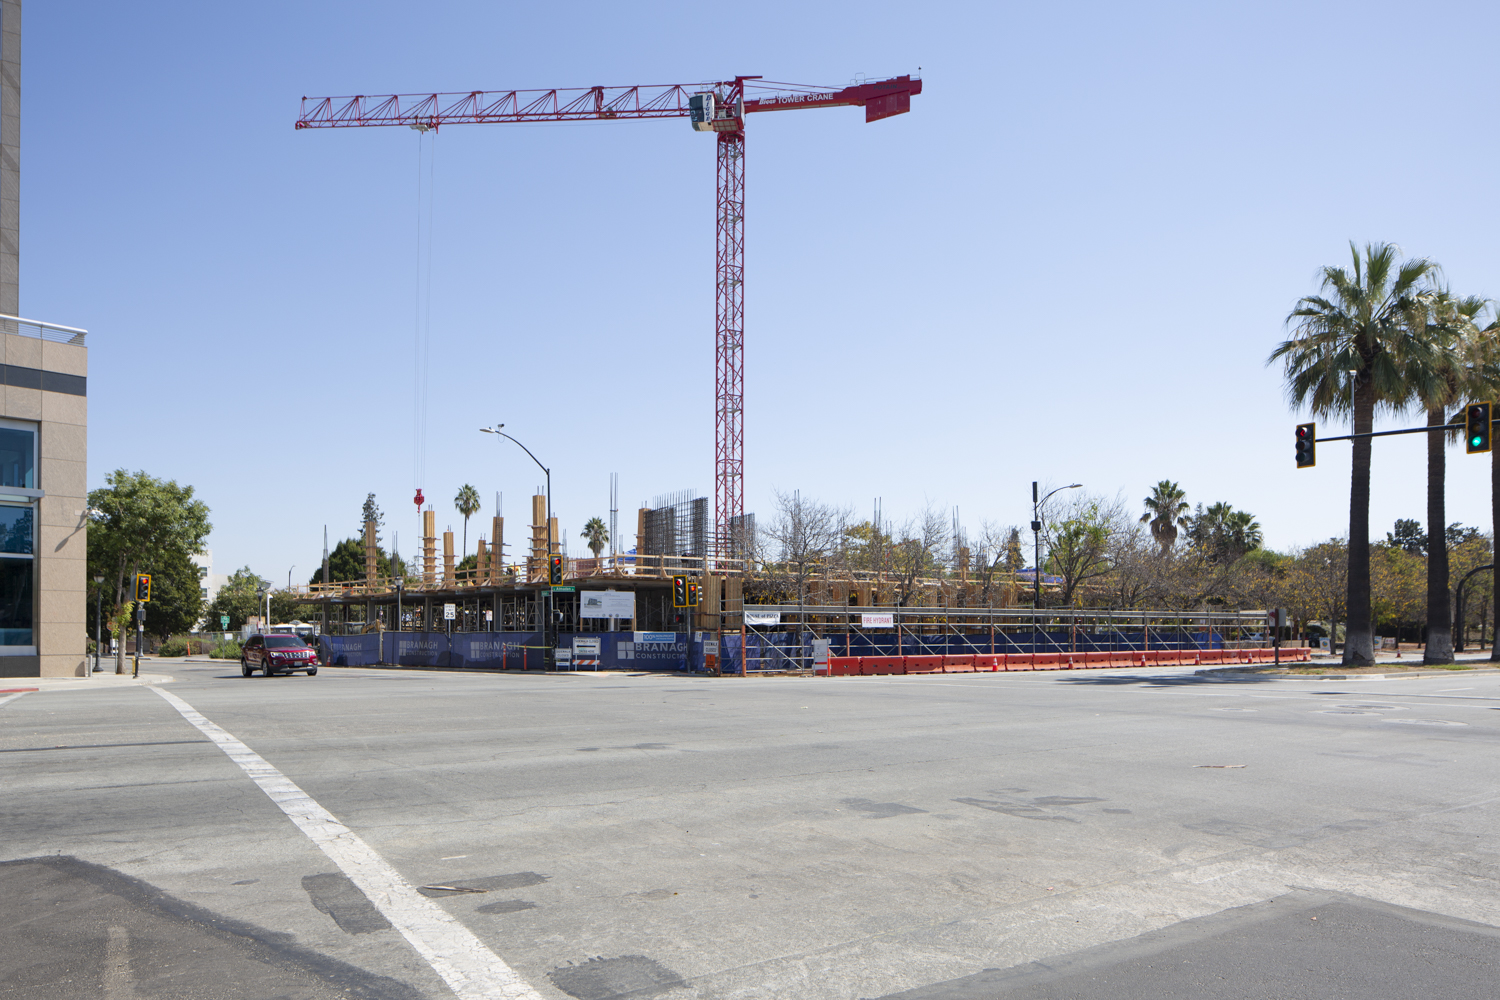 500 Almaden Boulevard construction update, image by Andrew Campbell Nelson